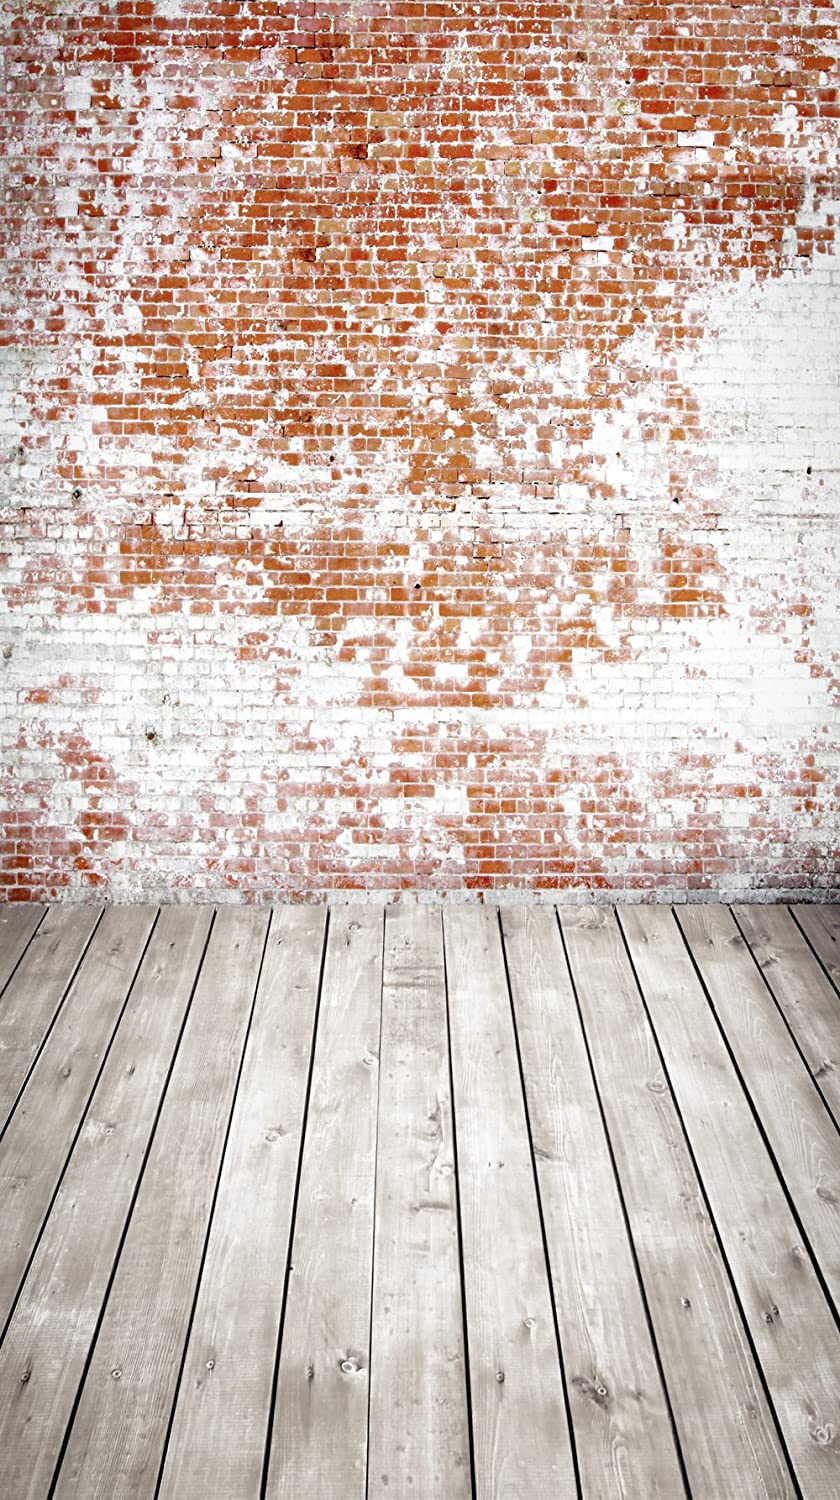 Muzi Photography Backdrops Colorful Brick Wall Photo Background for Studio Prop Dark Grey Wood Floor Photoshooting Wallpaper 170x315cm XT-6400